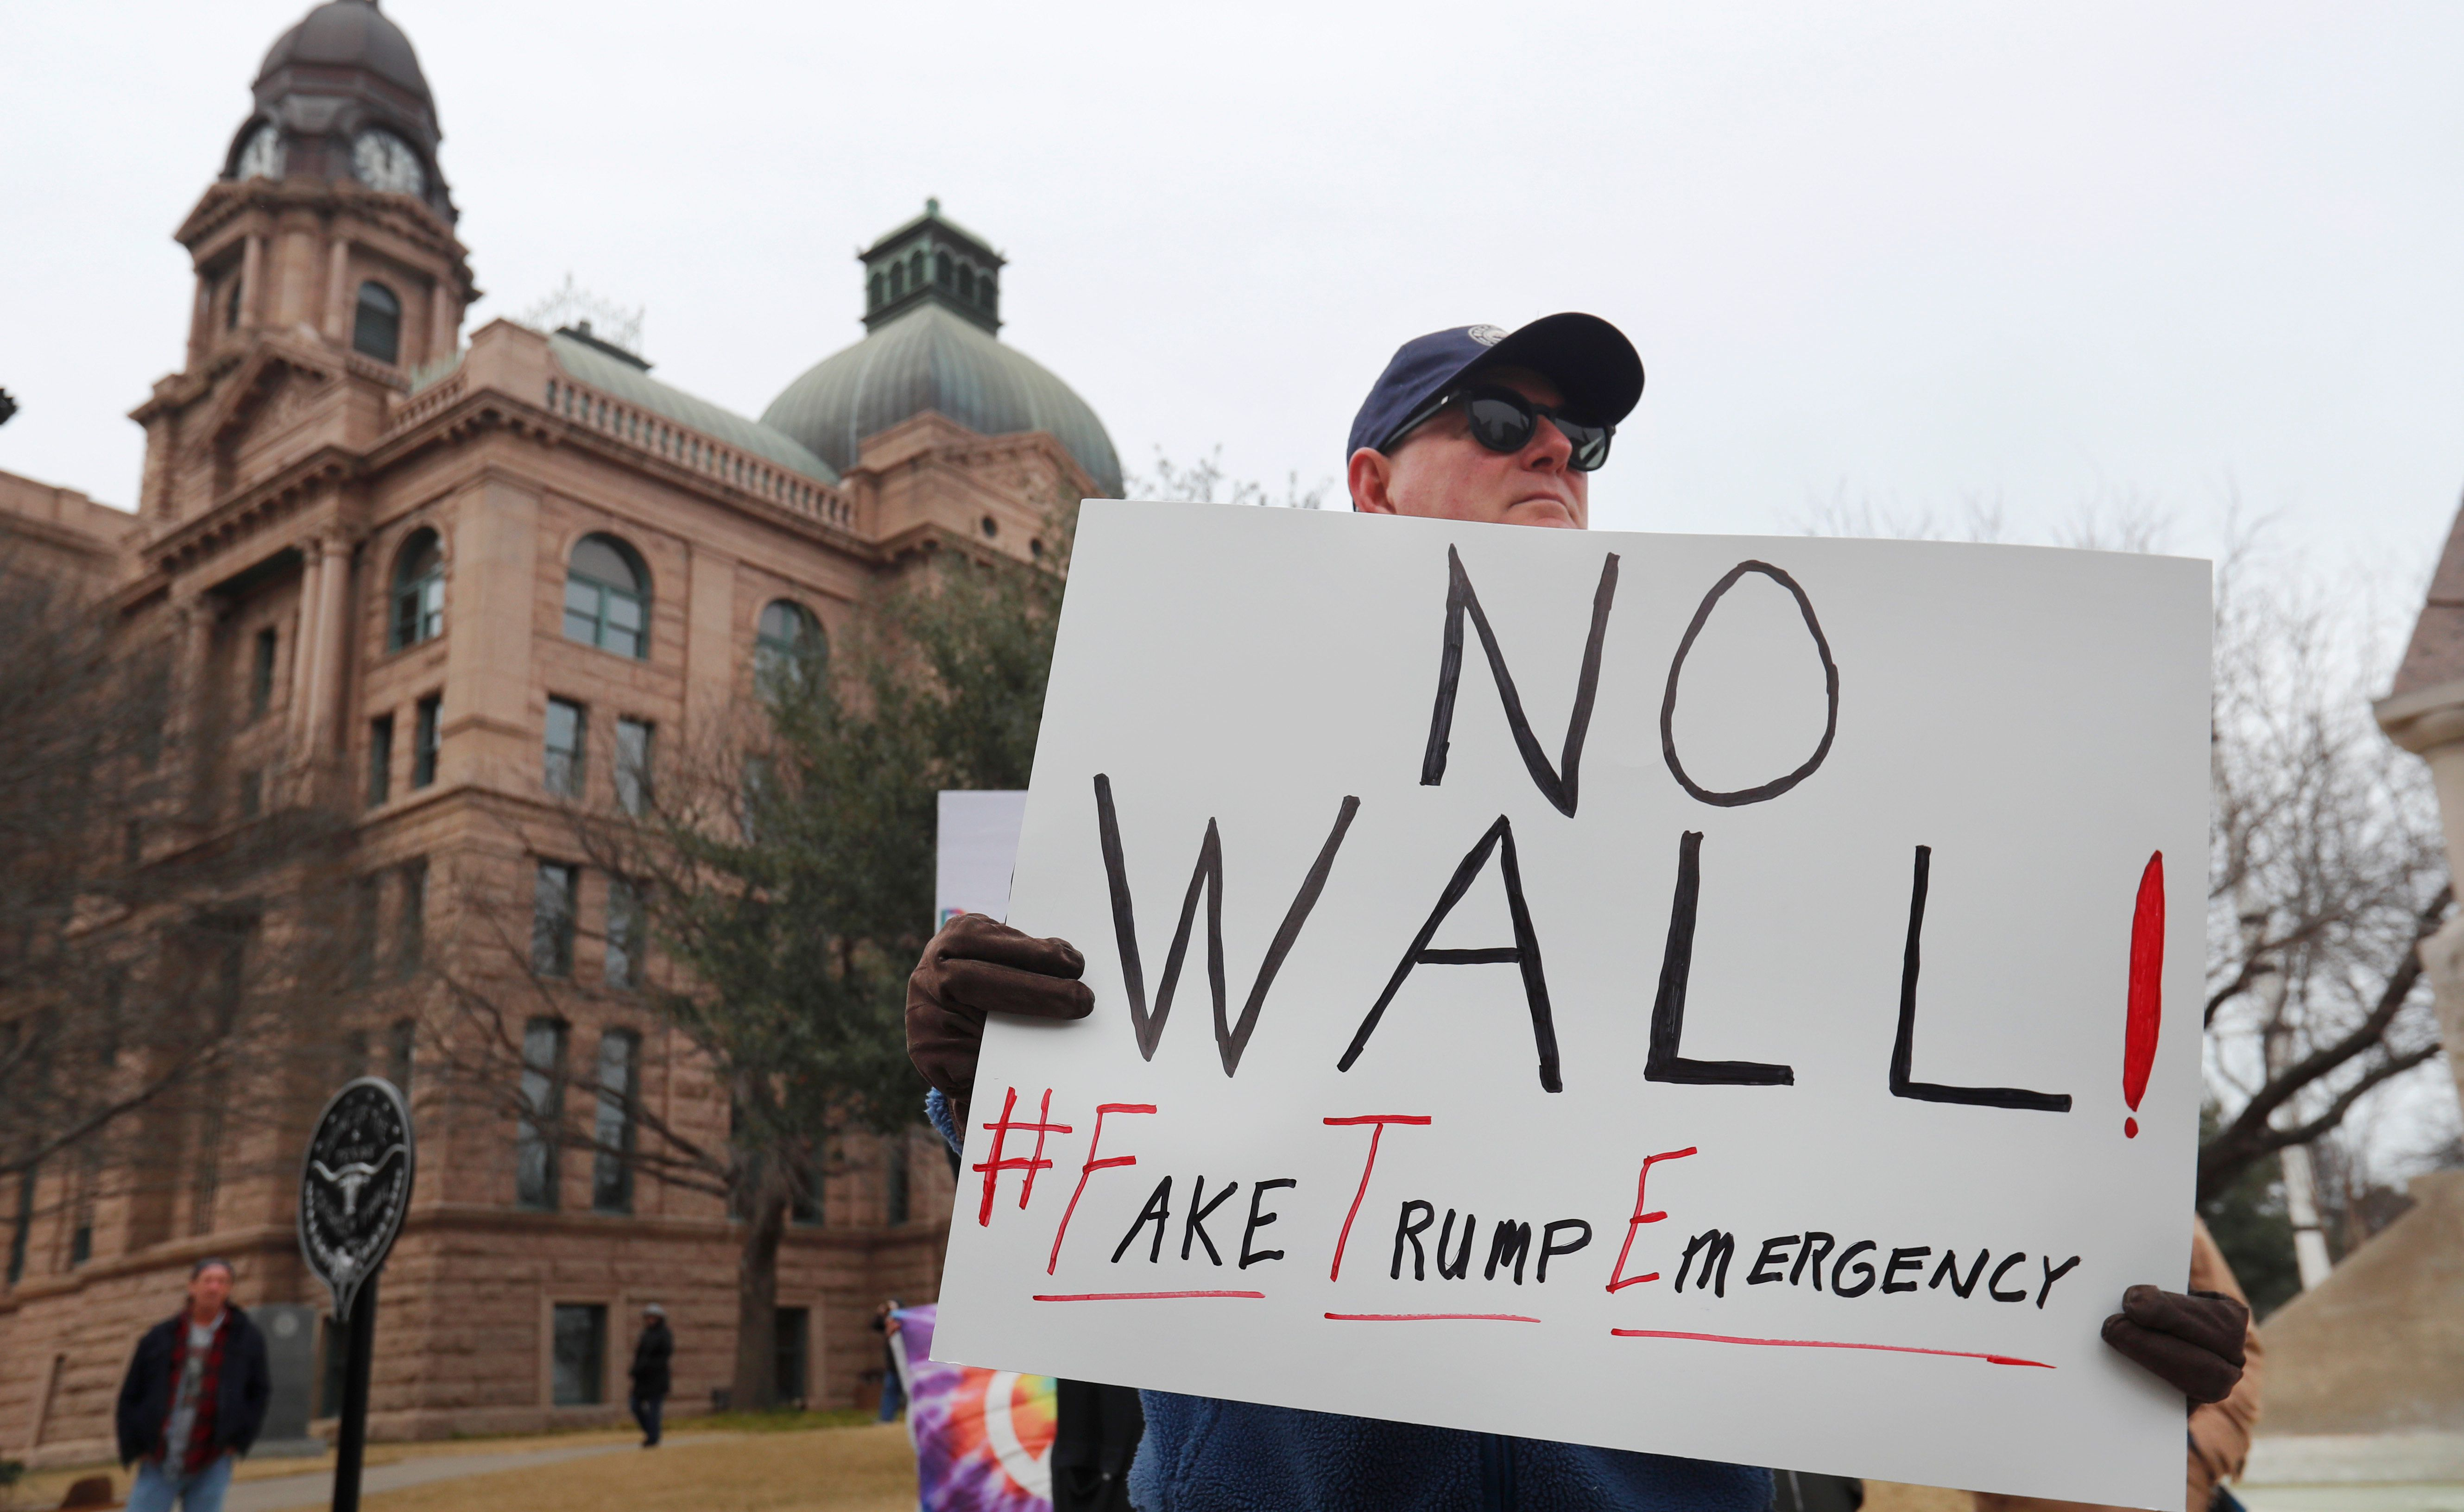 Jay Platt holds a sign during a protest in downtown Fort Worth, Texas, Monday, Feb. 18, 2019. People gathered on the Presidents Day holiday to protest President Donald Trump's recent national emergency declaration. (AP Photo/LM Otero)